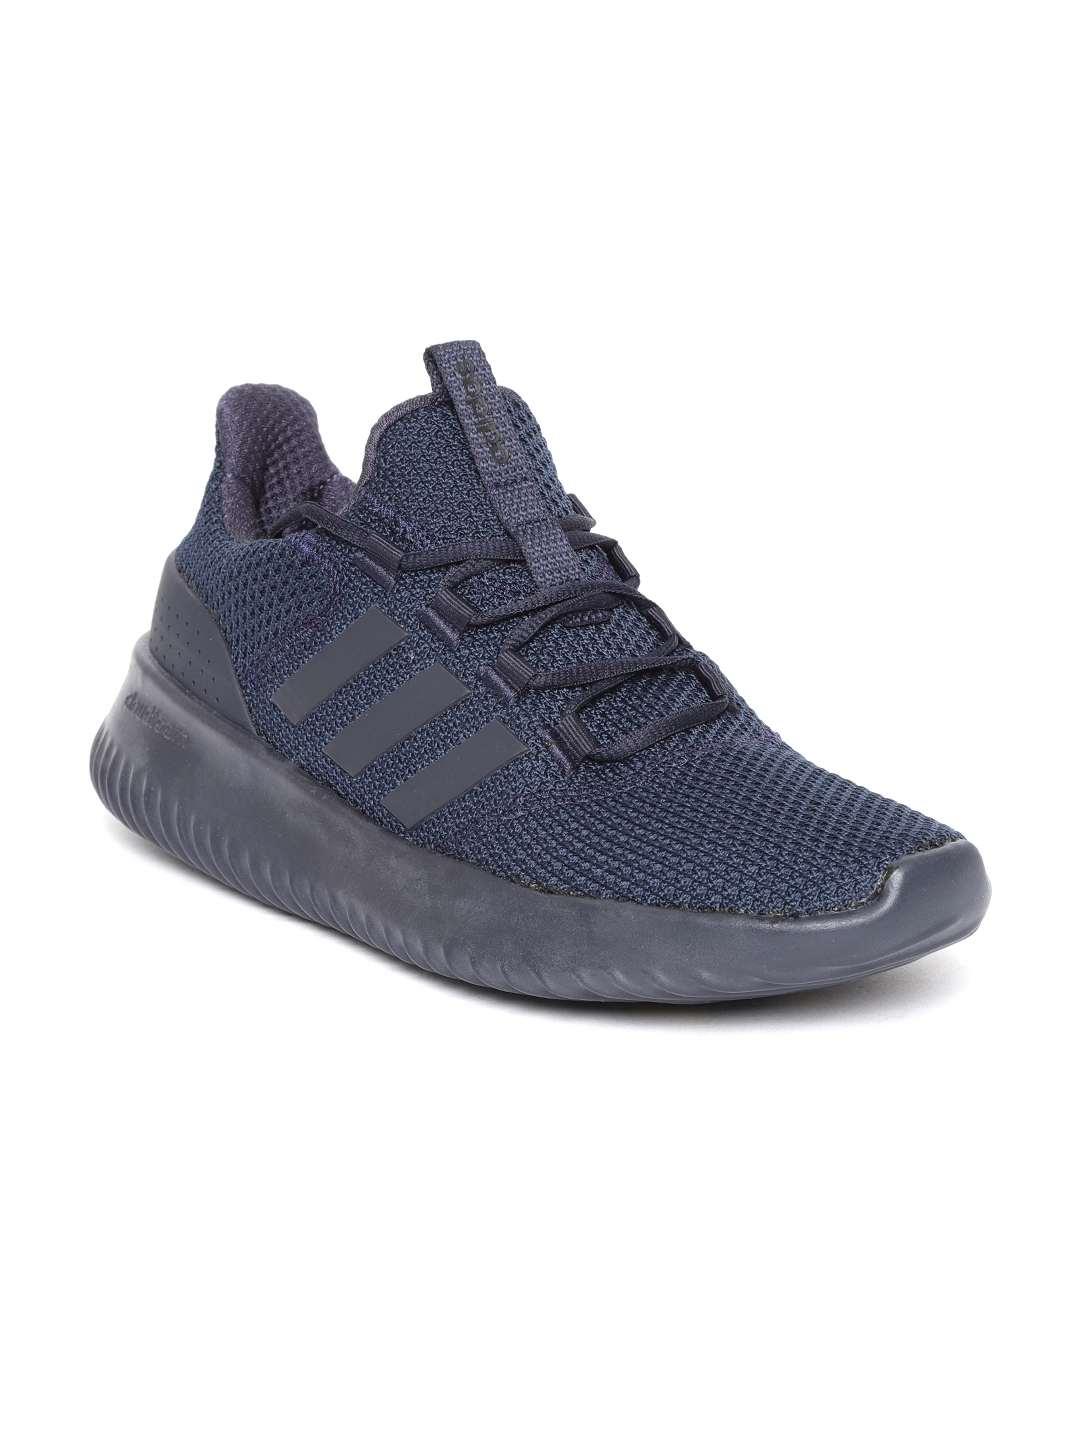 Buy ADIDAS Men Navy Blue Cloudfoam Ultimate Running Shoes - Sports ... f105415f1